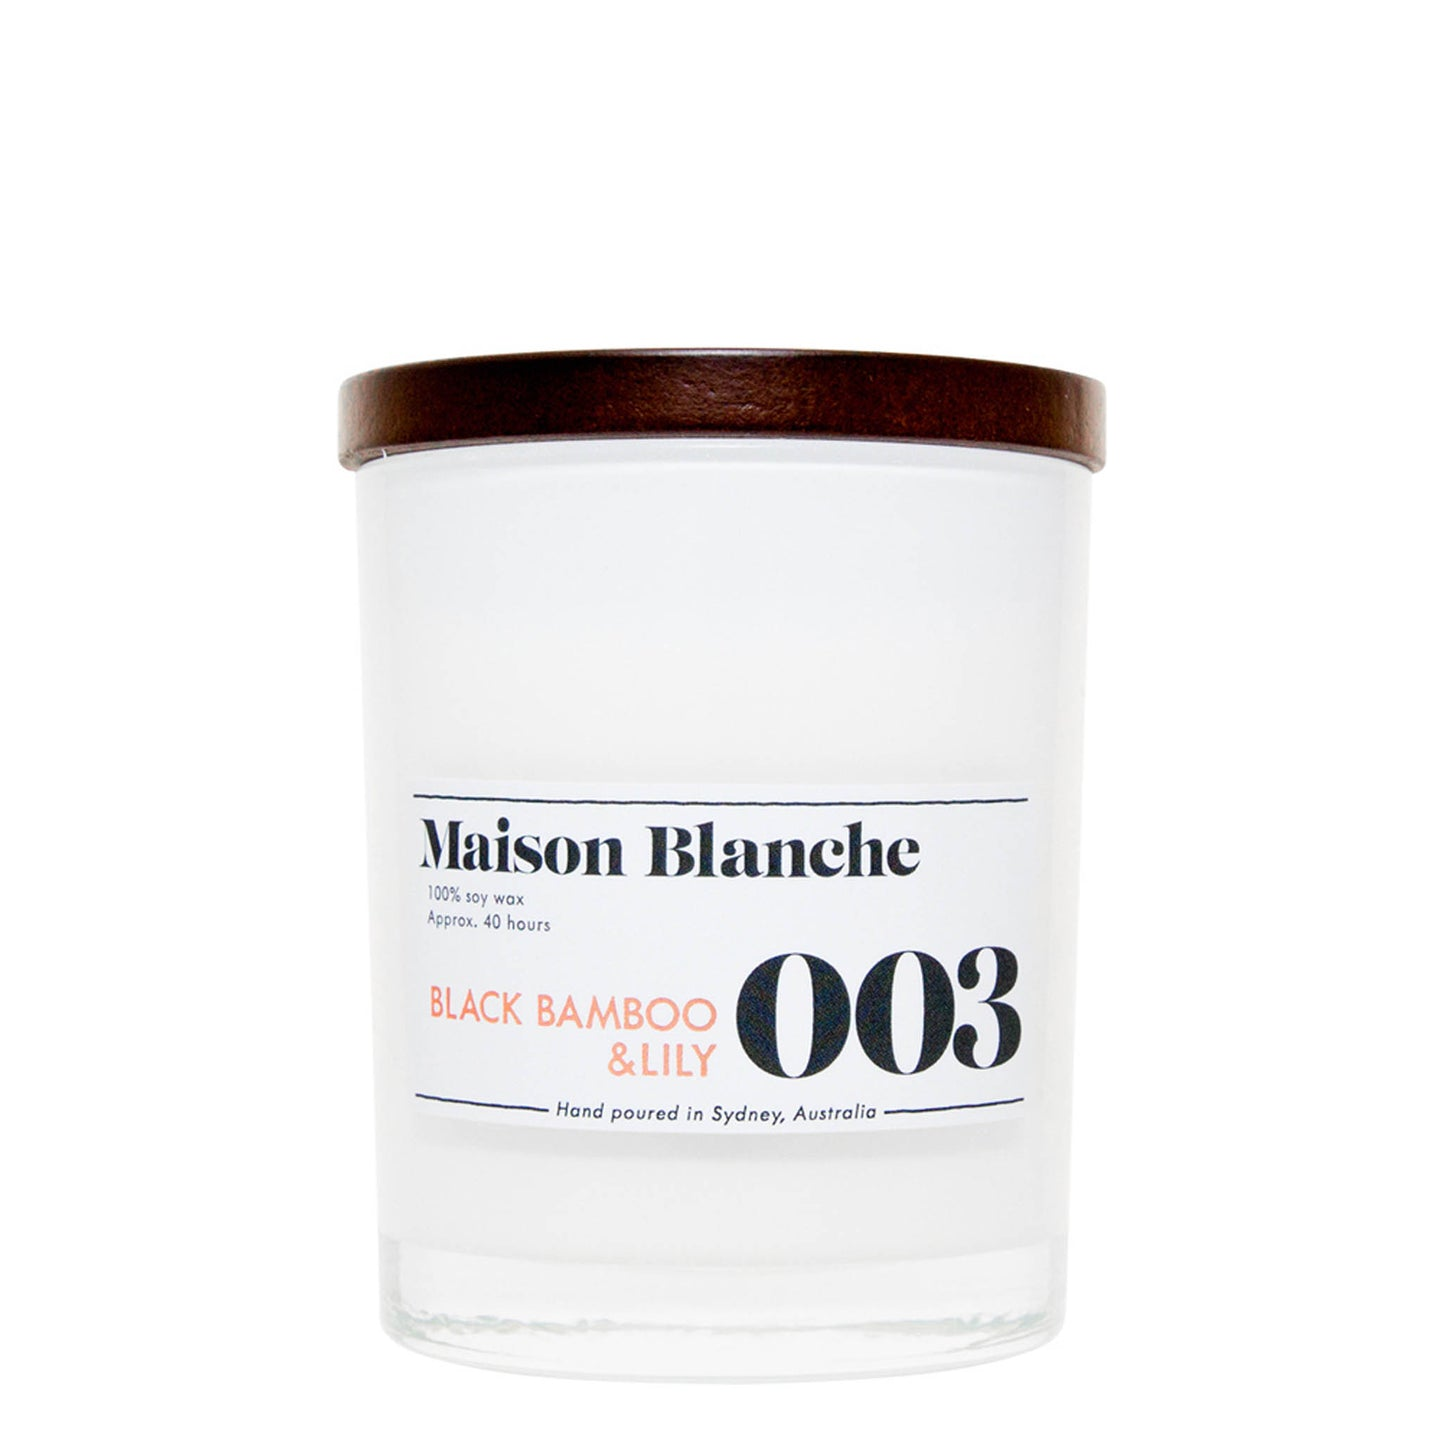 003 Black Bamboo & Lily Candle